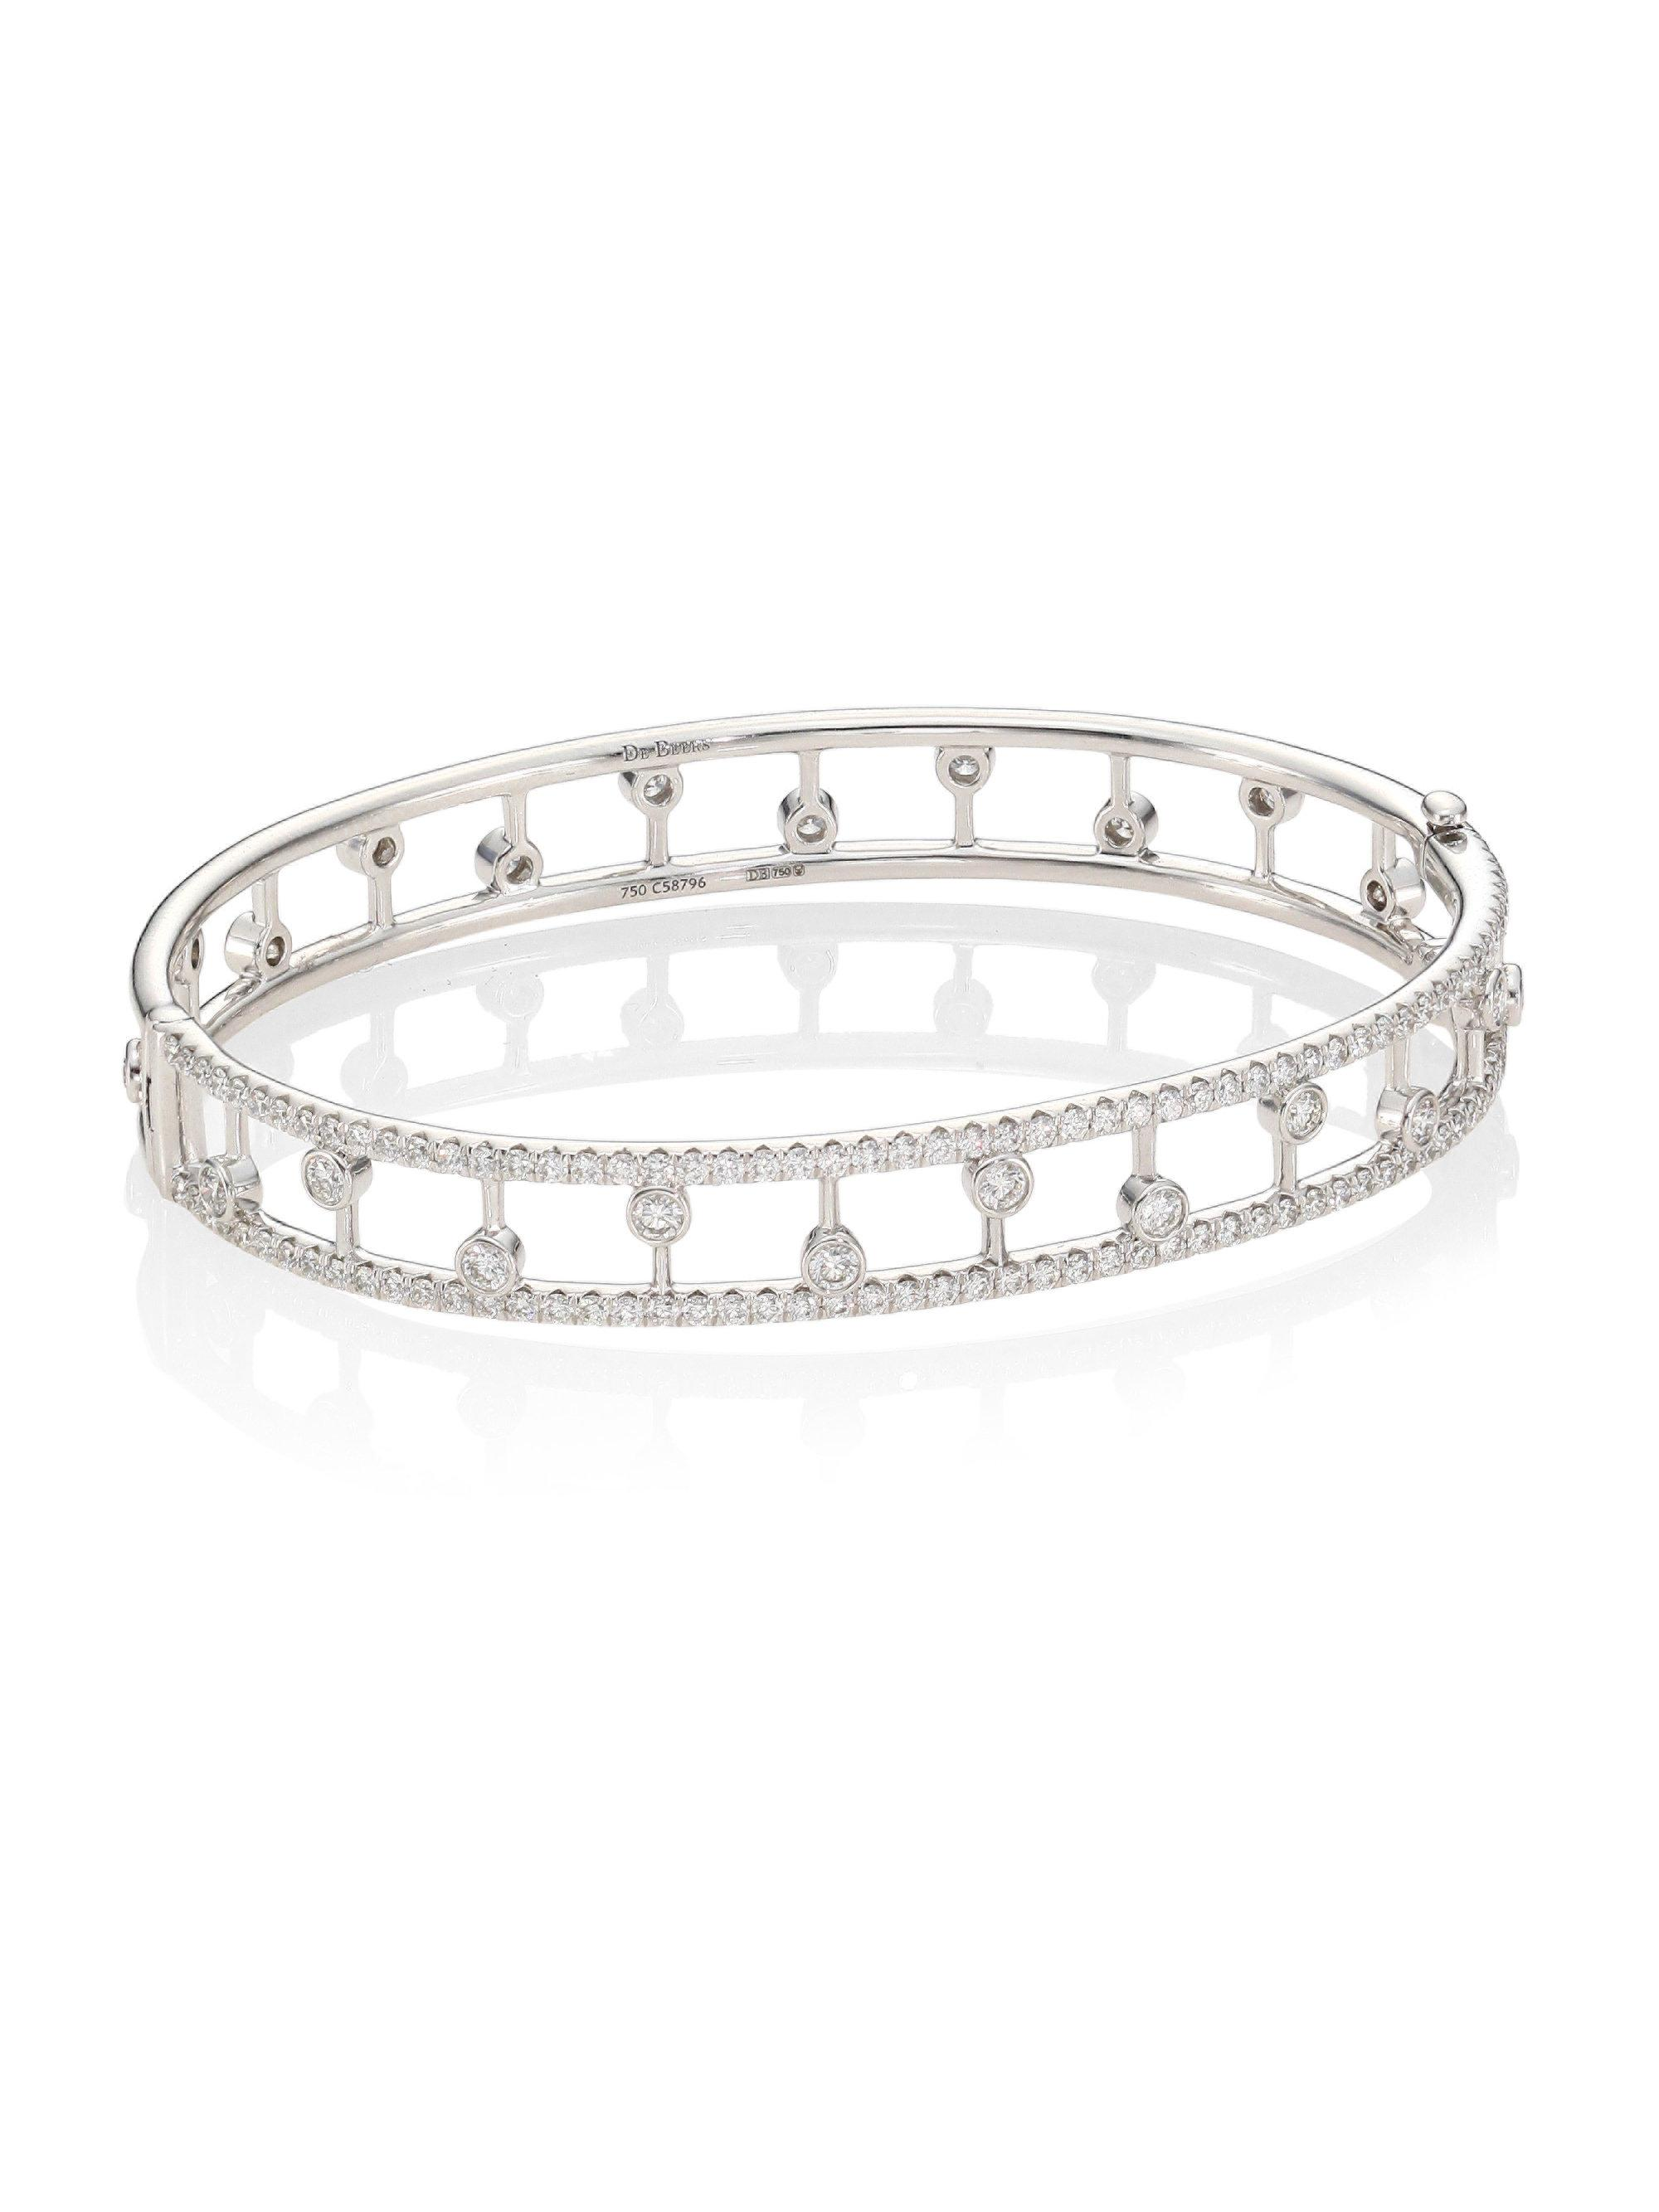 hulchi fidget single pave white moveable ww stackable products with bracelet diamond bangles belluni station bangle gold stretch